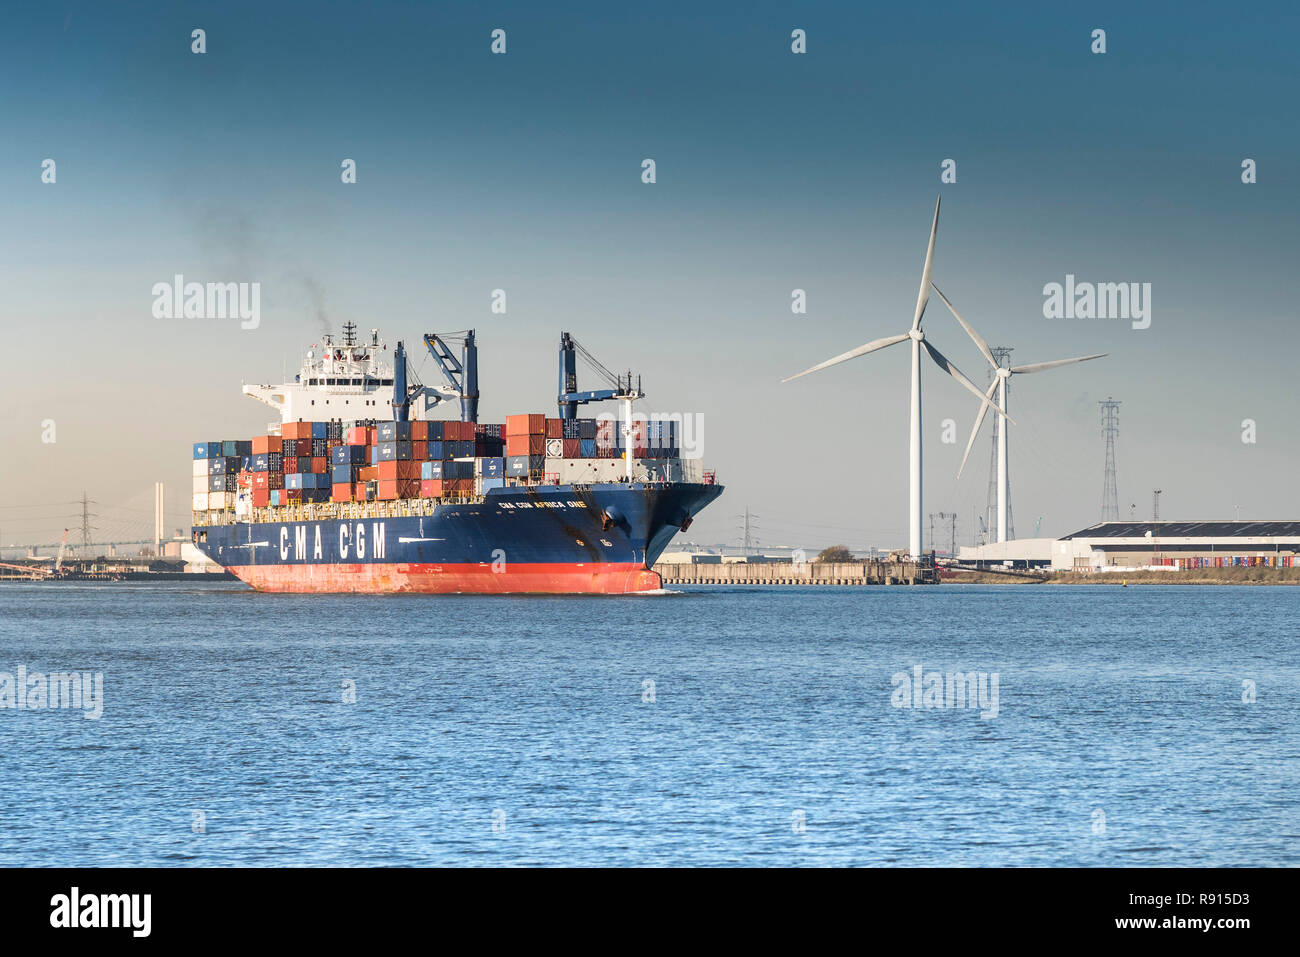 Shipping on the Thames.  The CMA CGM Africa One container ship leaving the Port of Tilbury and steaming downriver on the River Thames. - Stock Image